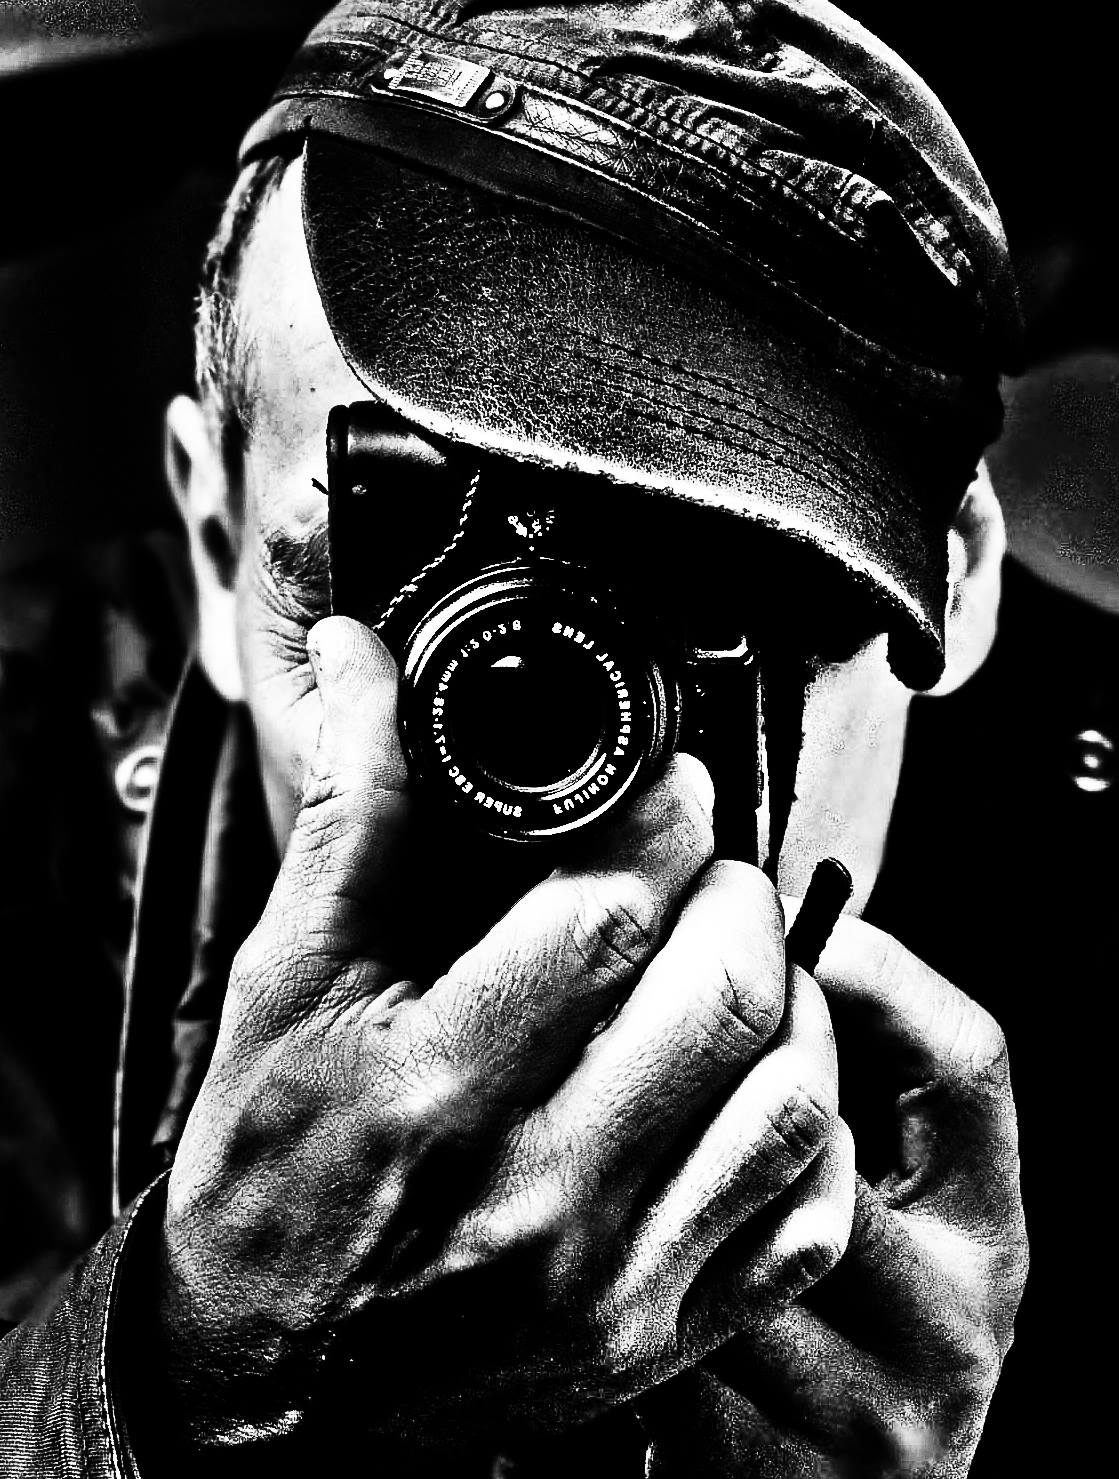 DOUG SANFORD    Doug is an award-winning ex-military combat photographer who's work has been seen in magazines like: Rolling Stone, People, Cosmopolitan, and InStyle Magazine. Doug has shot national ad campaigns fro Boeing, Lockheed Martin, Coca Cola, Hershey's, Discovery, and the World Wild Life Federation.   Often described as evocative, emotional, and edgy, Doug's images blend conceptual and visual elements seamlessly. Whether his work is in stark black and white, or lush saturated color, it is infused with emotion and immediacy. Doug has an artist's true understanding of the medium.   Doug is an Honor's graduate of the prestigious Brooks Institute of Photography in Santa Barbara, CA. Doug has received numerous ADDY and Art Director awards, and was recognized by Parsons School of Design with the World Image Award for Fine Art Photography. His series entitled I. Hate. You., premiered at the distinguished Frasier Gallery to wide critical acclaim.